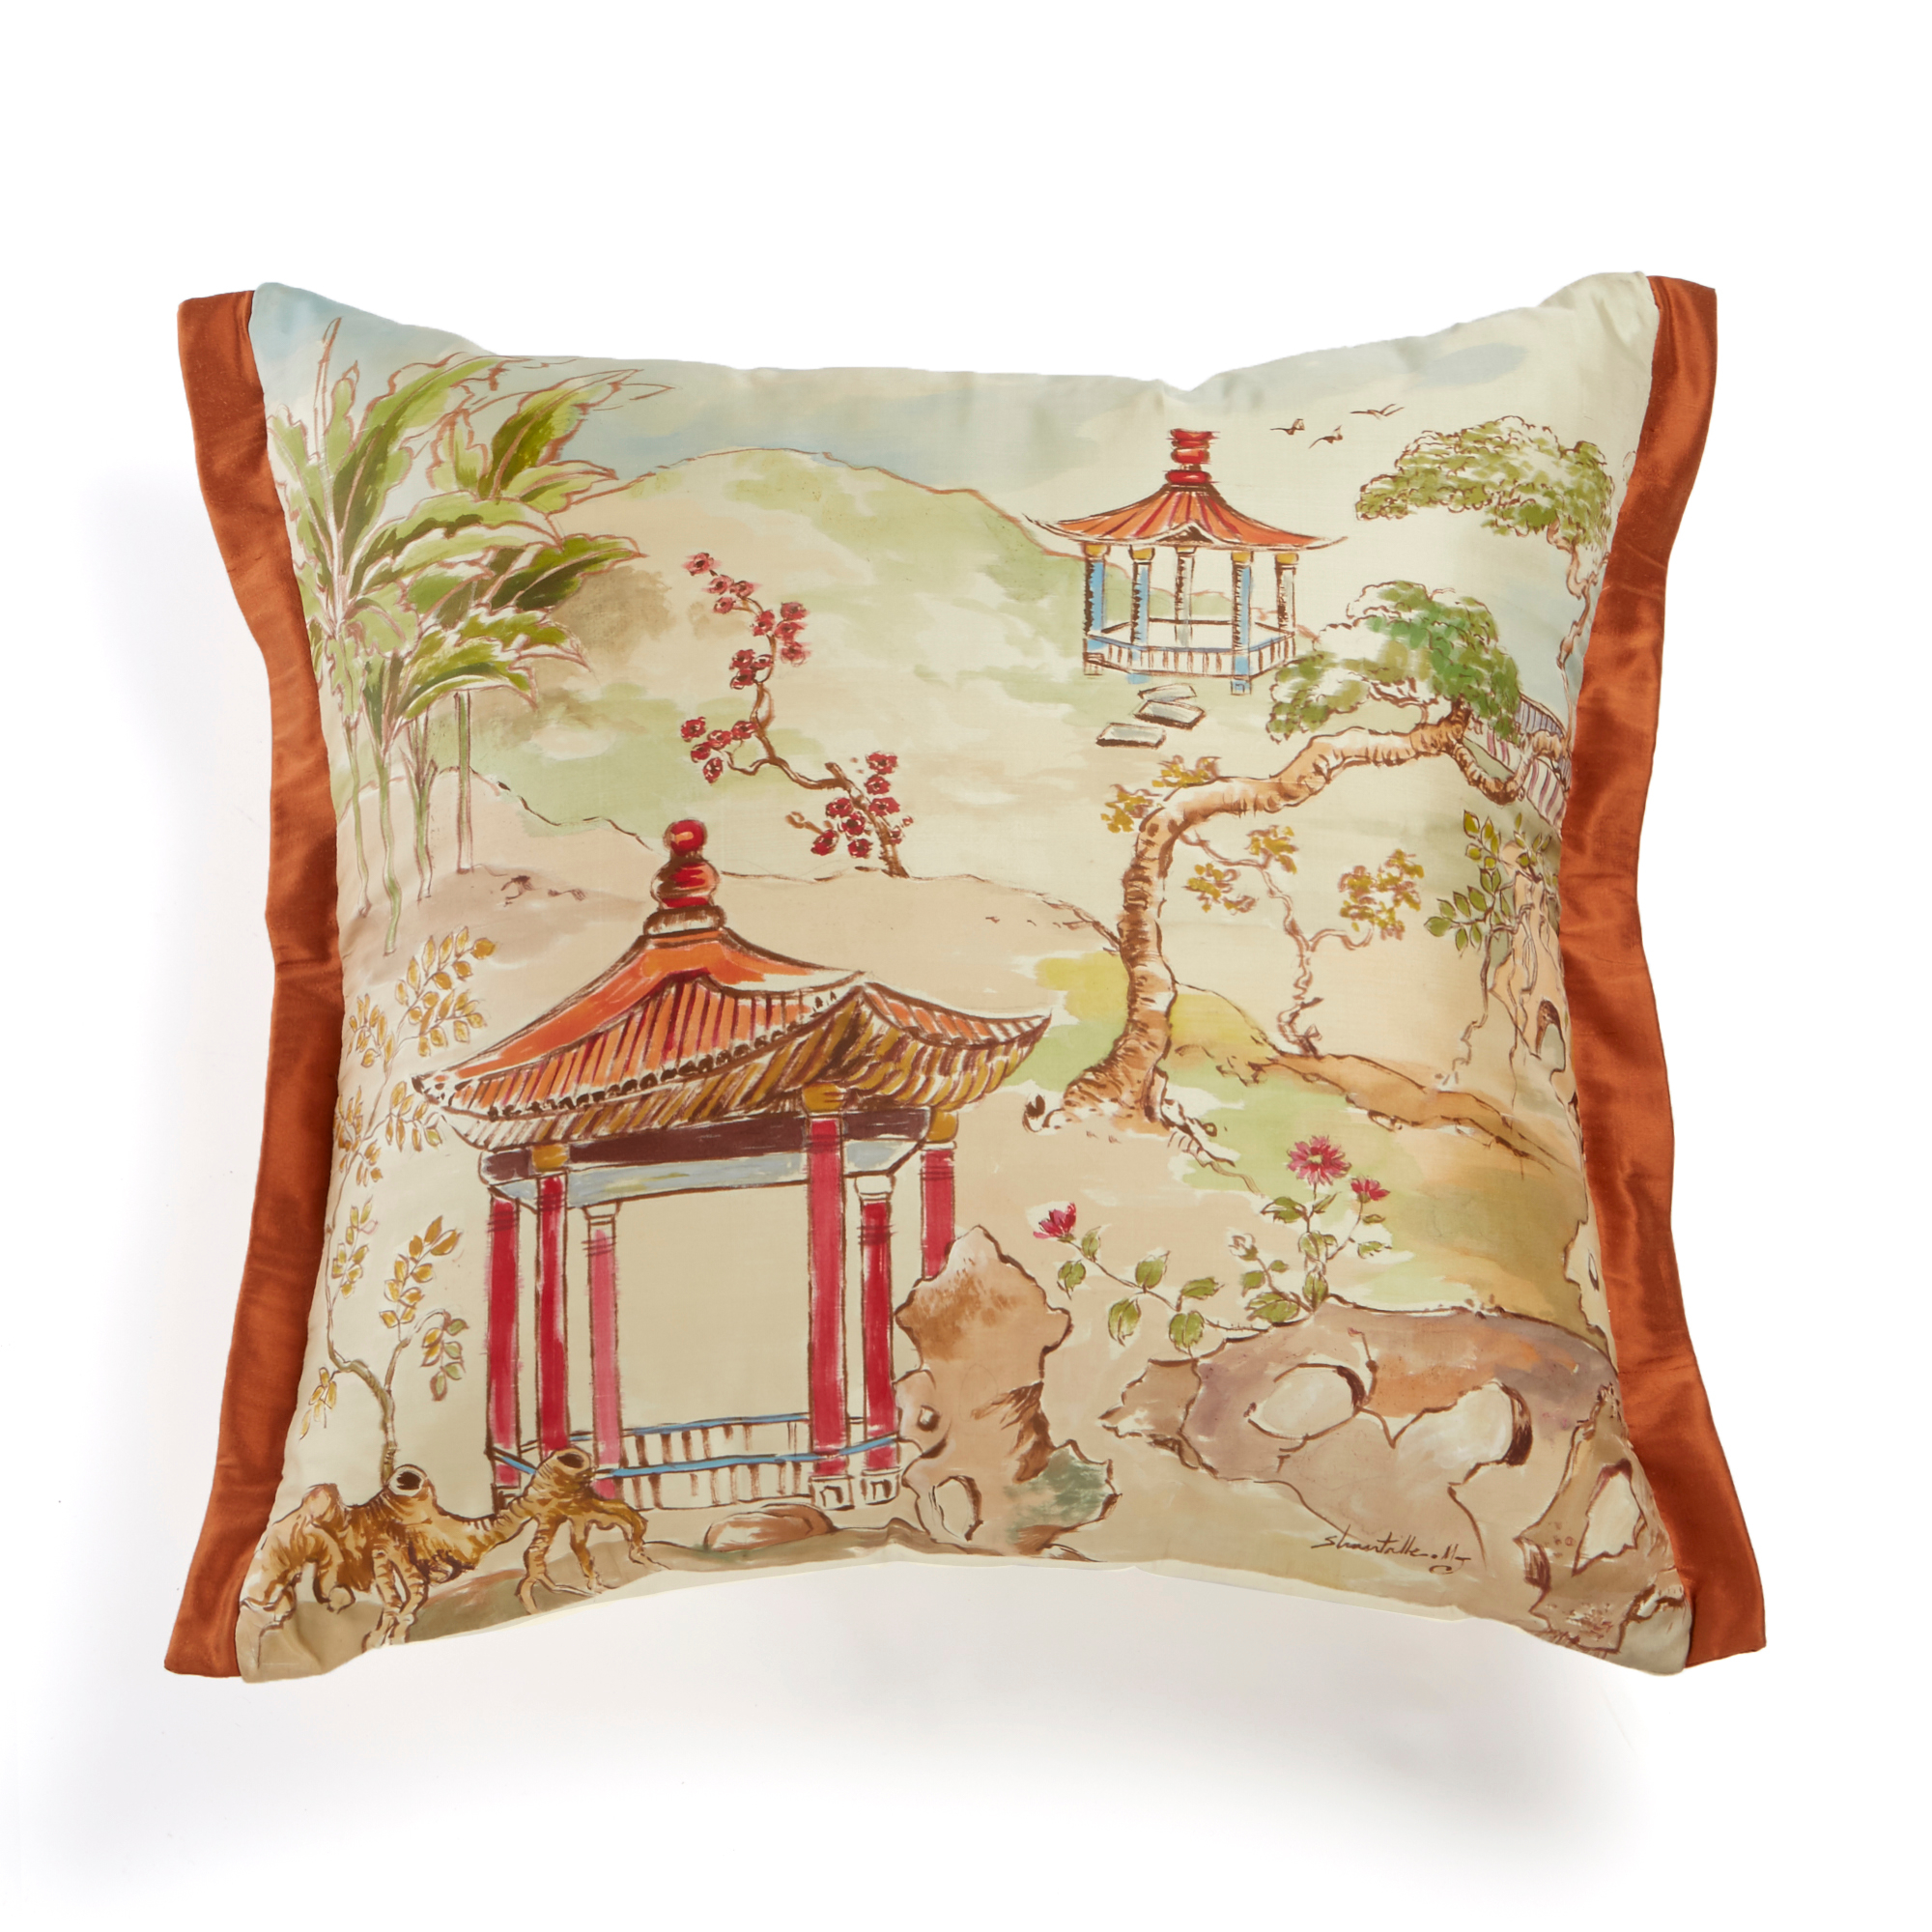 Handpainted Pagoda Pillow